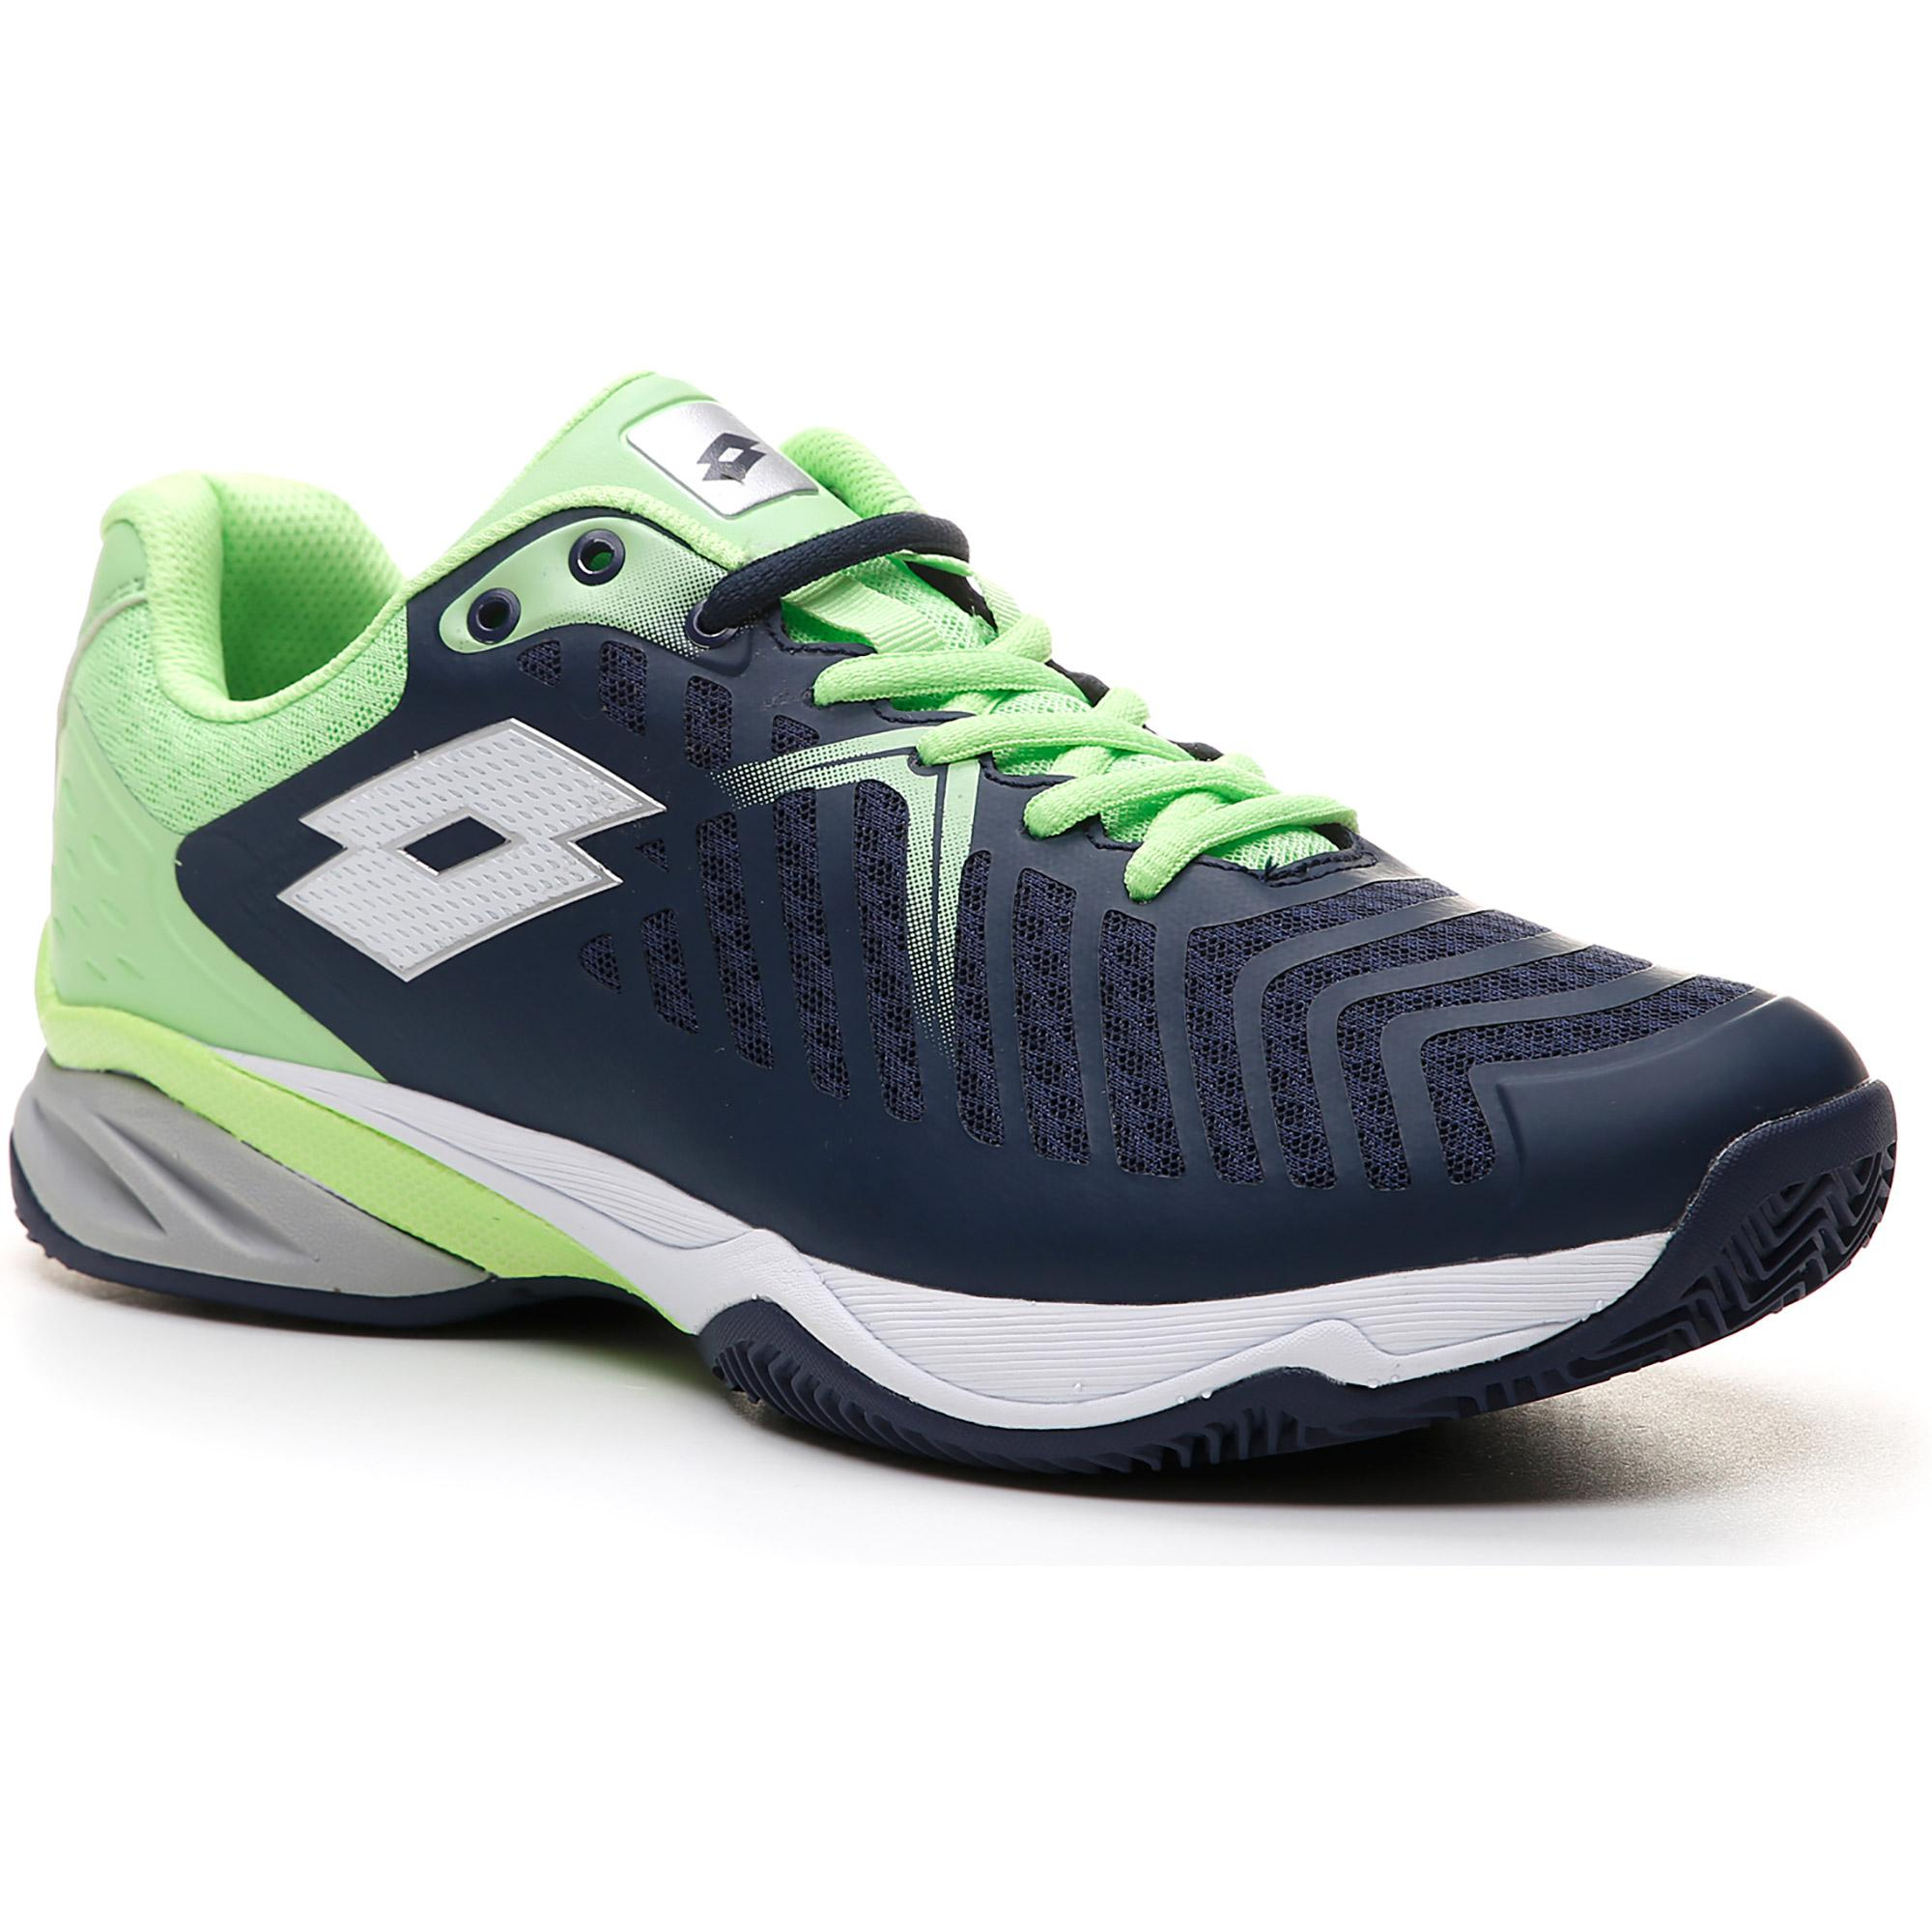 Lotto Mens Space 400 Clay Tennis Shoes